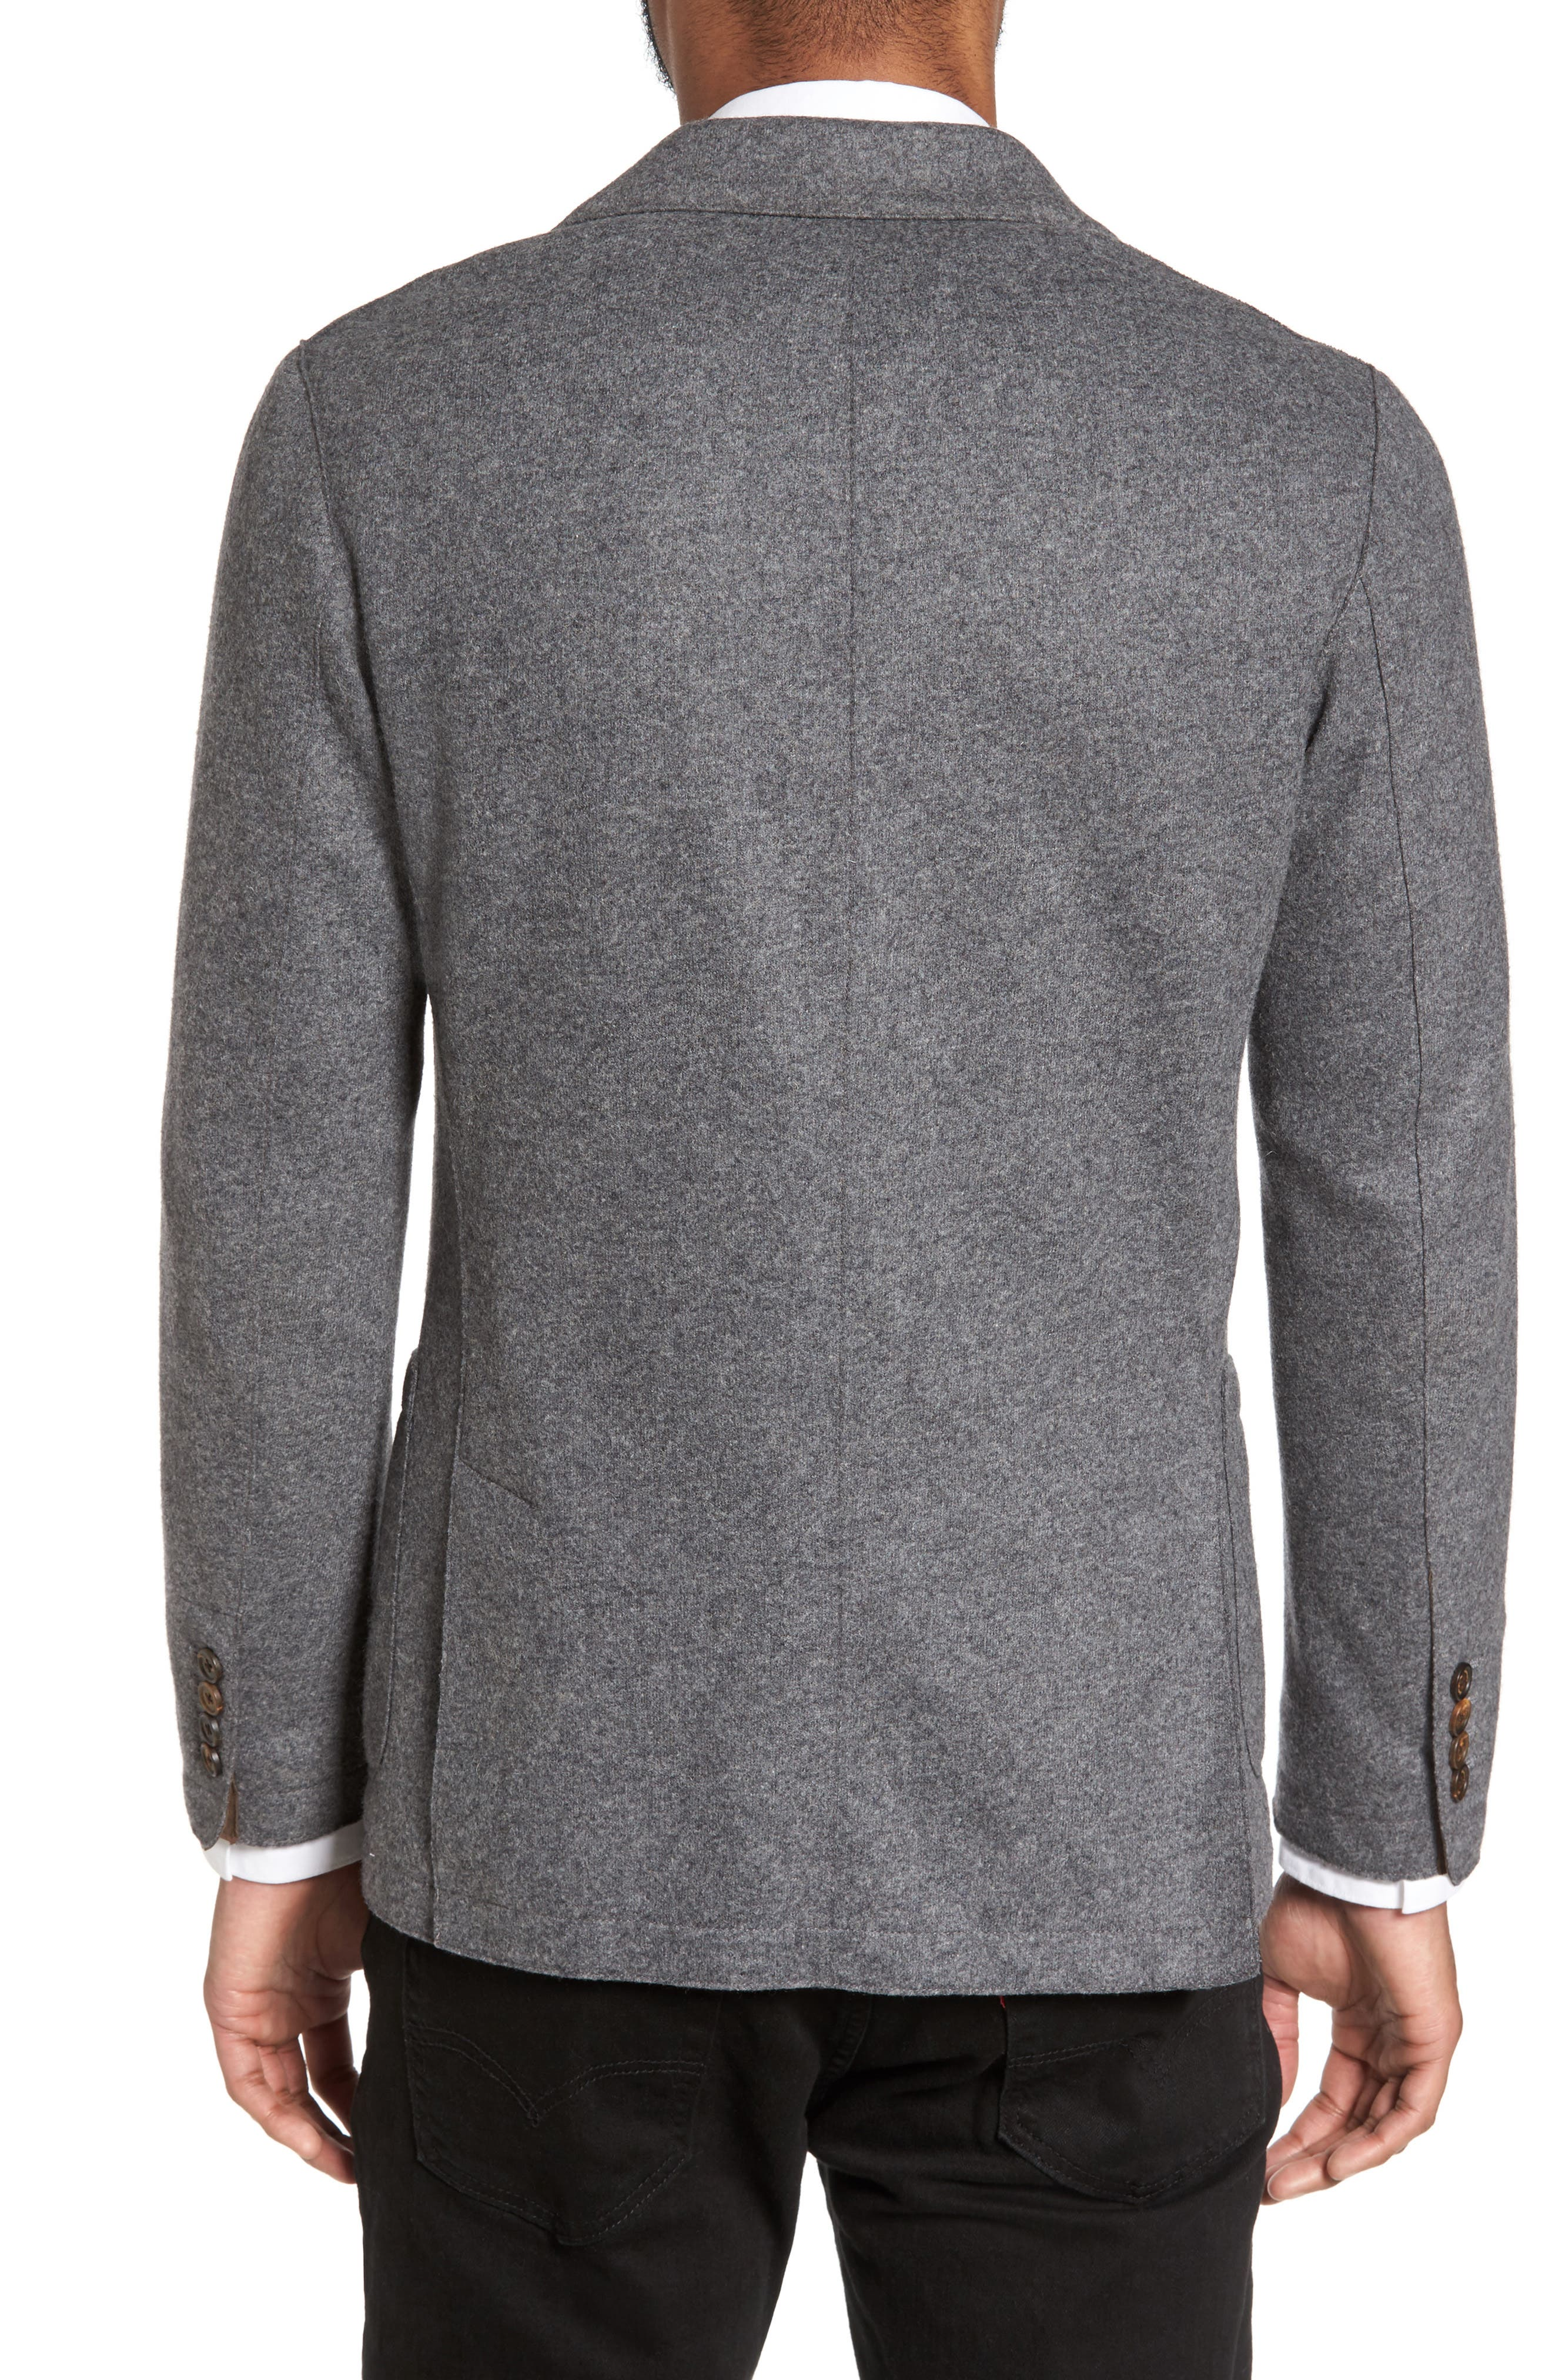 Wool Blend Blazer,                             Alternate thumbnail 2, color,                             SMOKE GREY MELANGE